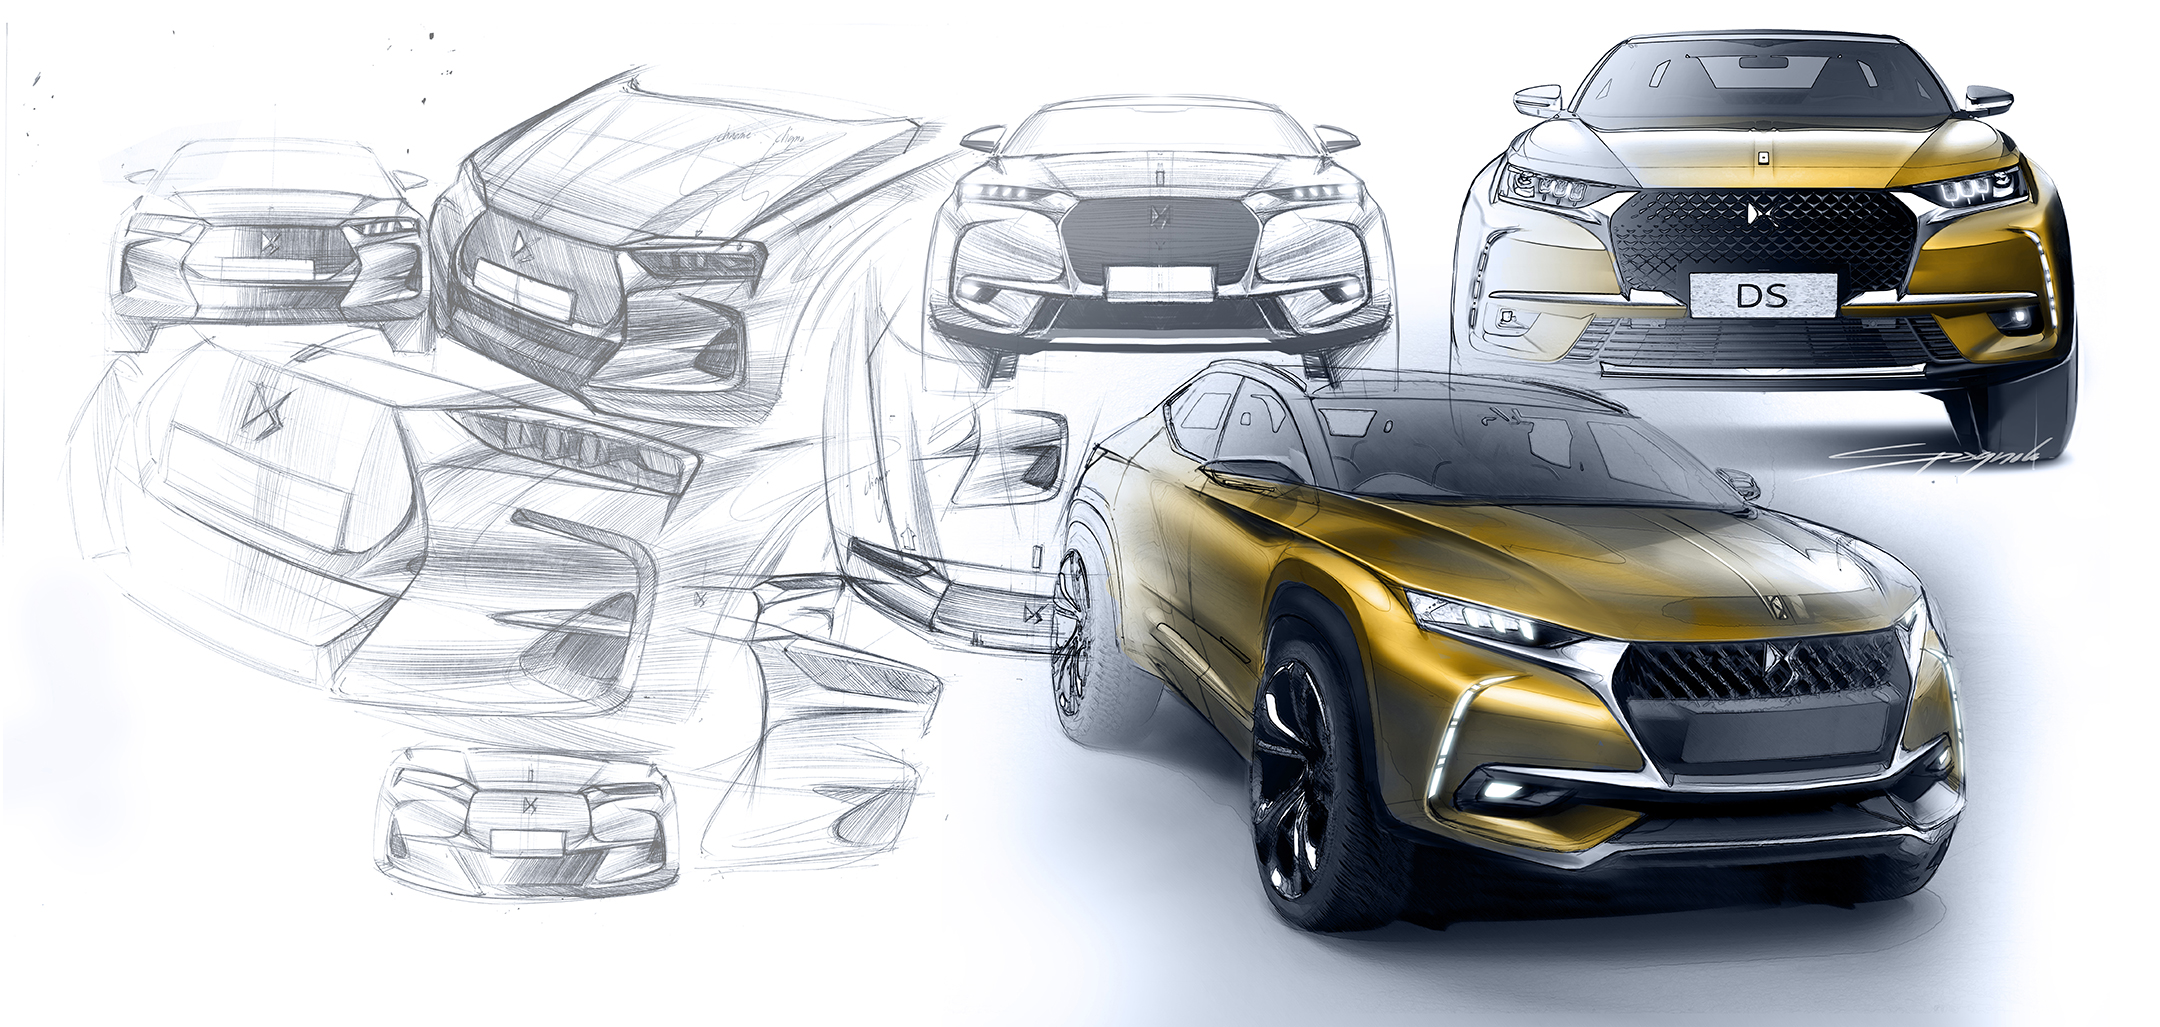 DS 7 CROSSBACK - 2017 - front sketch design